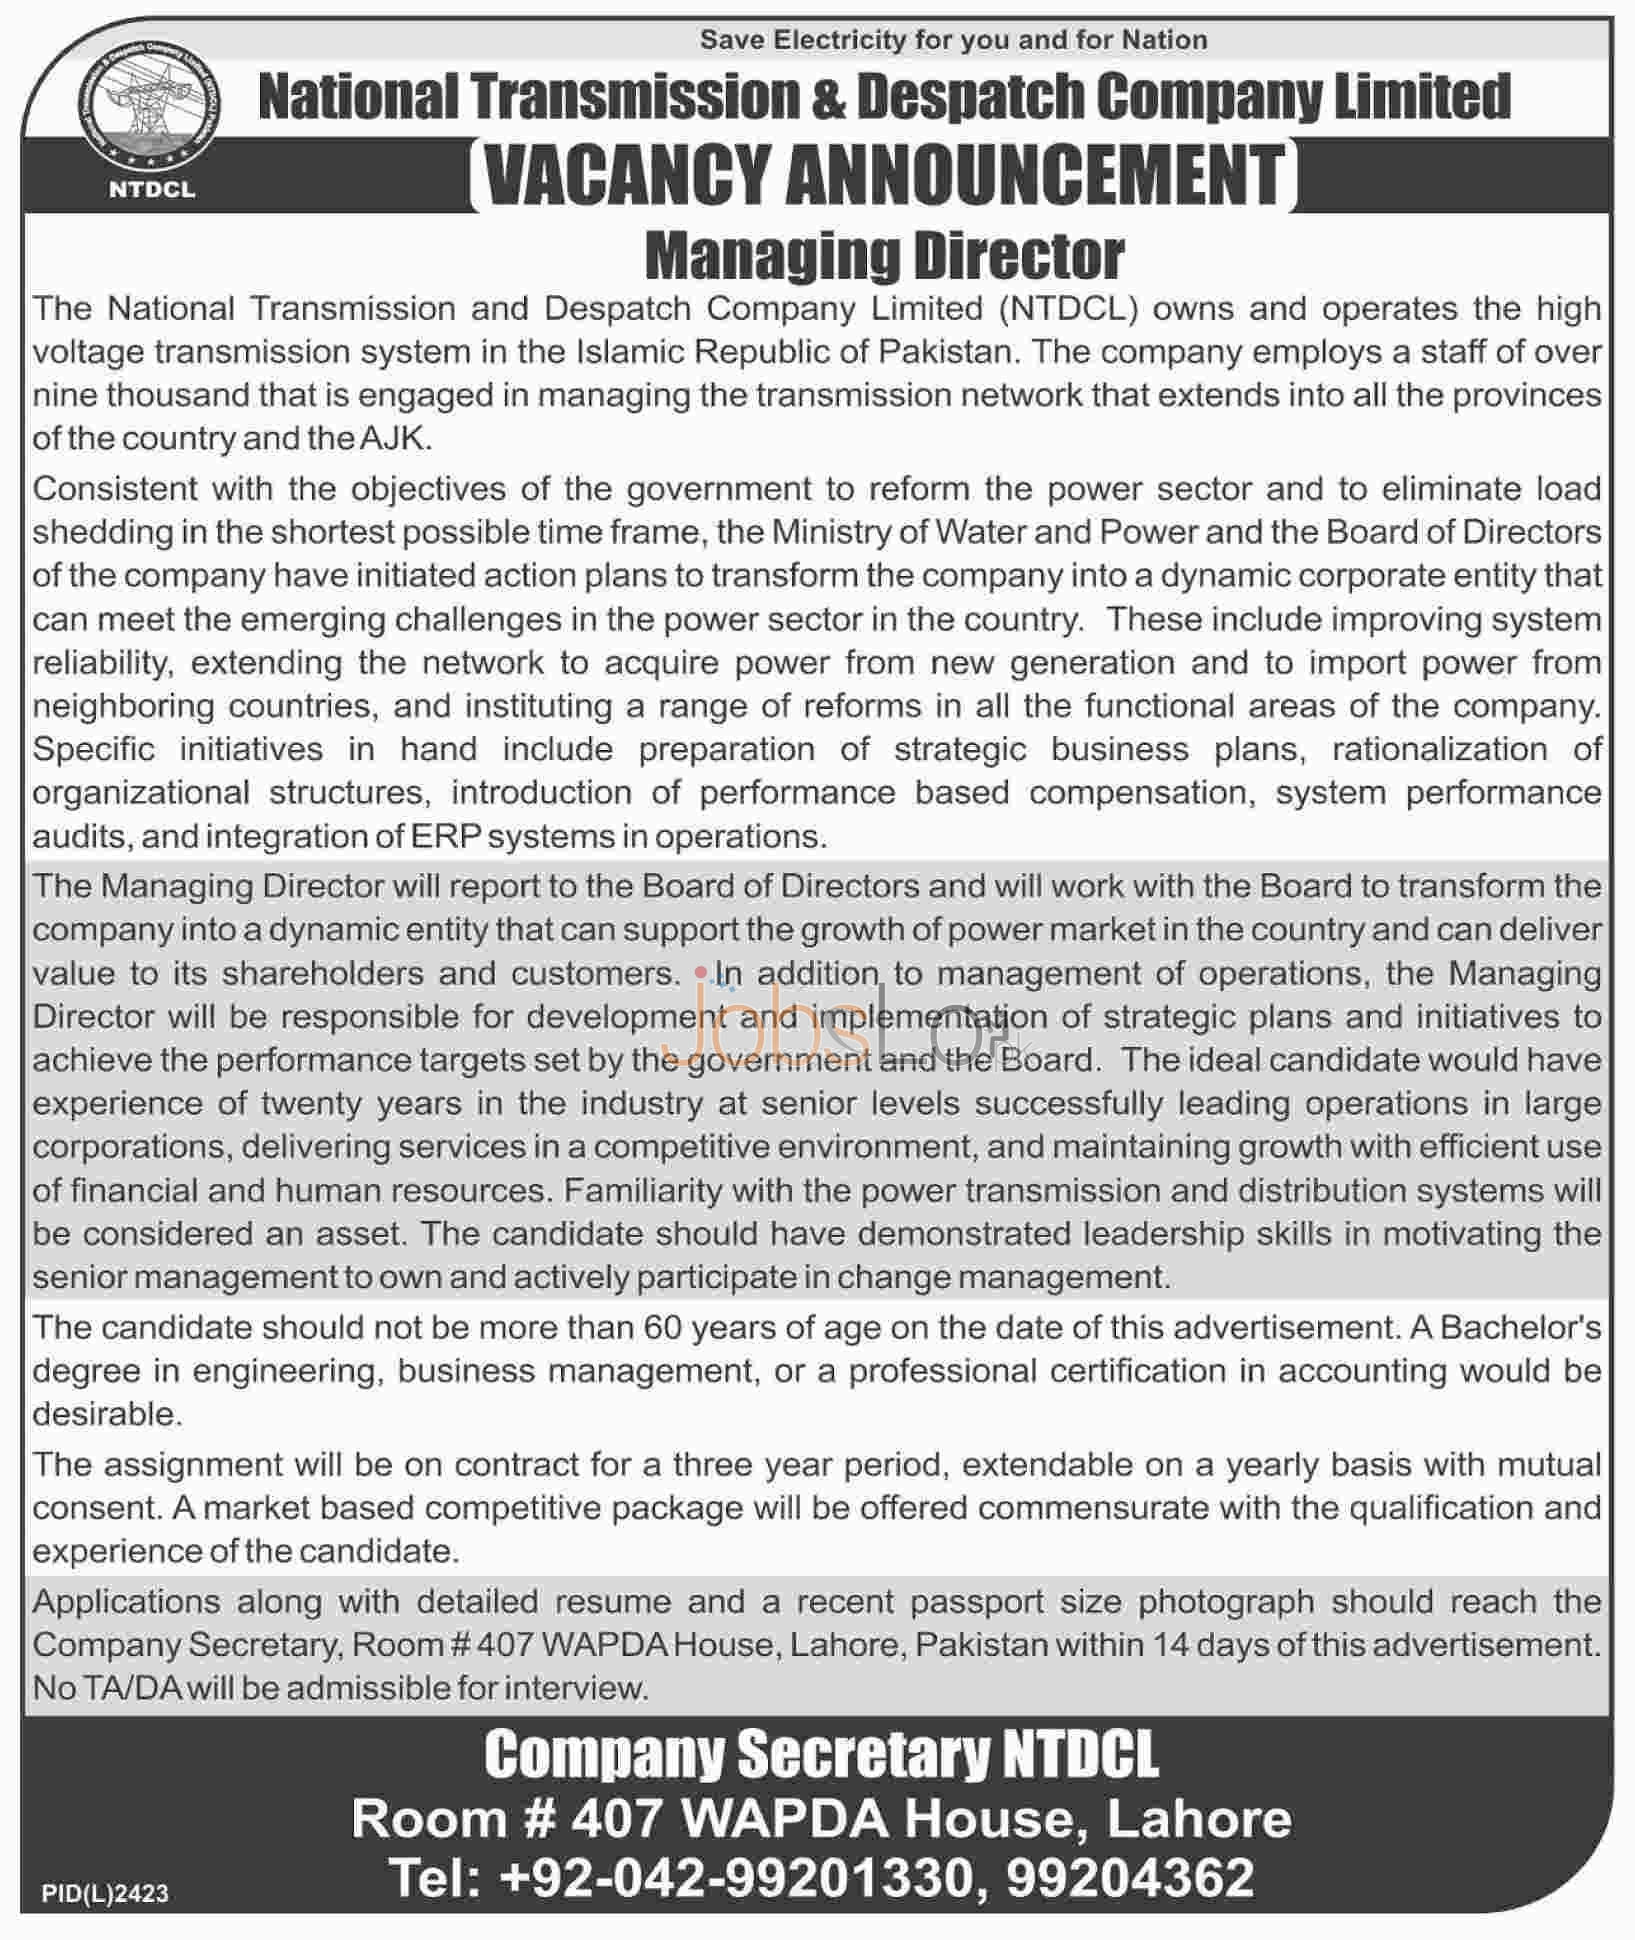 Career Opportunities in NTDCL Company February 2016 in Lahore for Managing Director